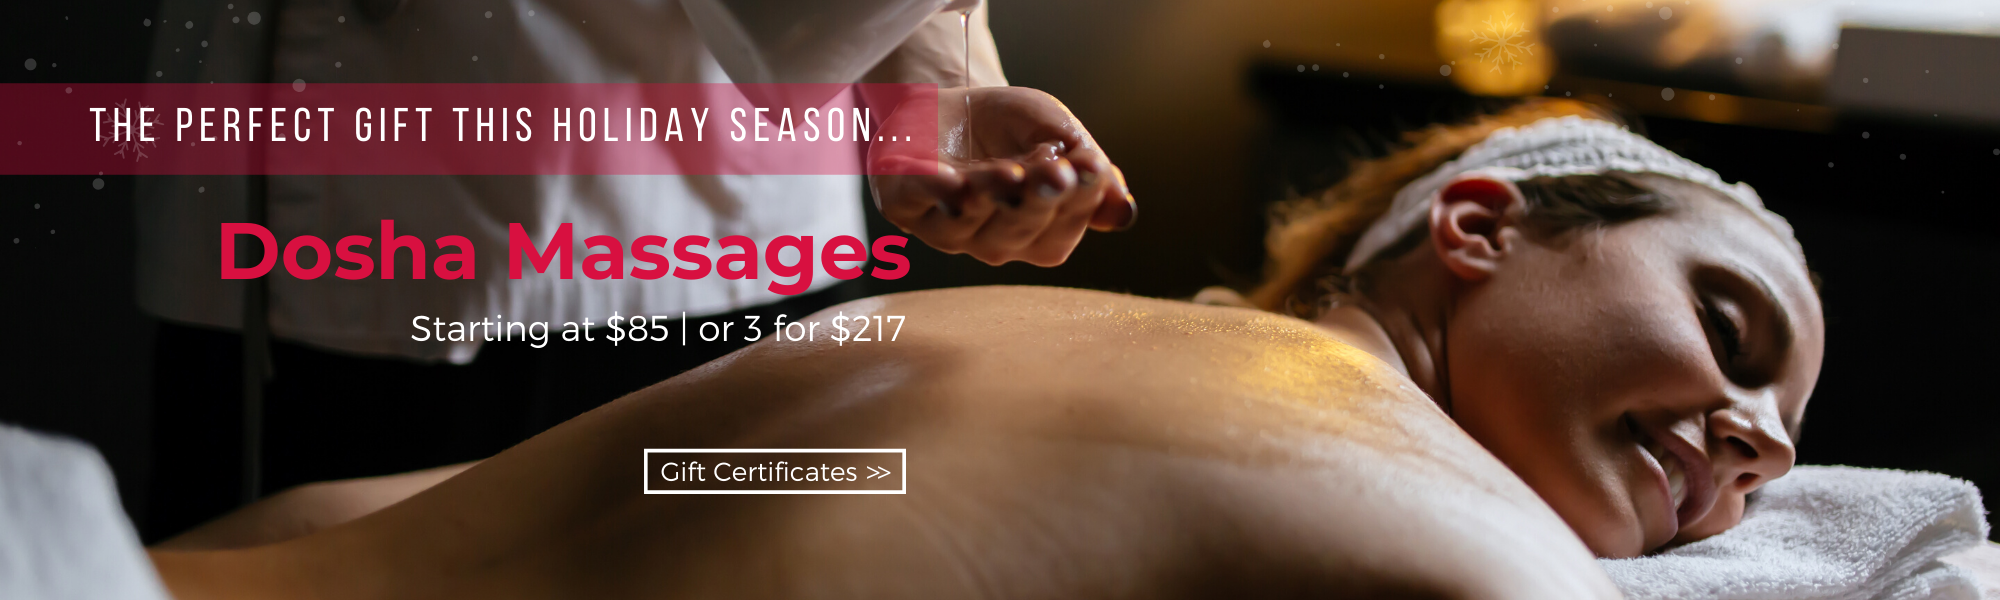 Dosha offers a variety of massages from swedish to deep tissue and sport to prenatal and hot stone. Give the perfect gift this holiday season and gift the gift of a dosha massage.